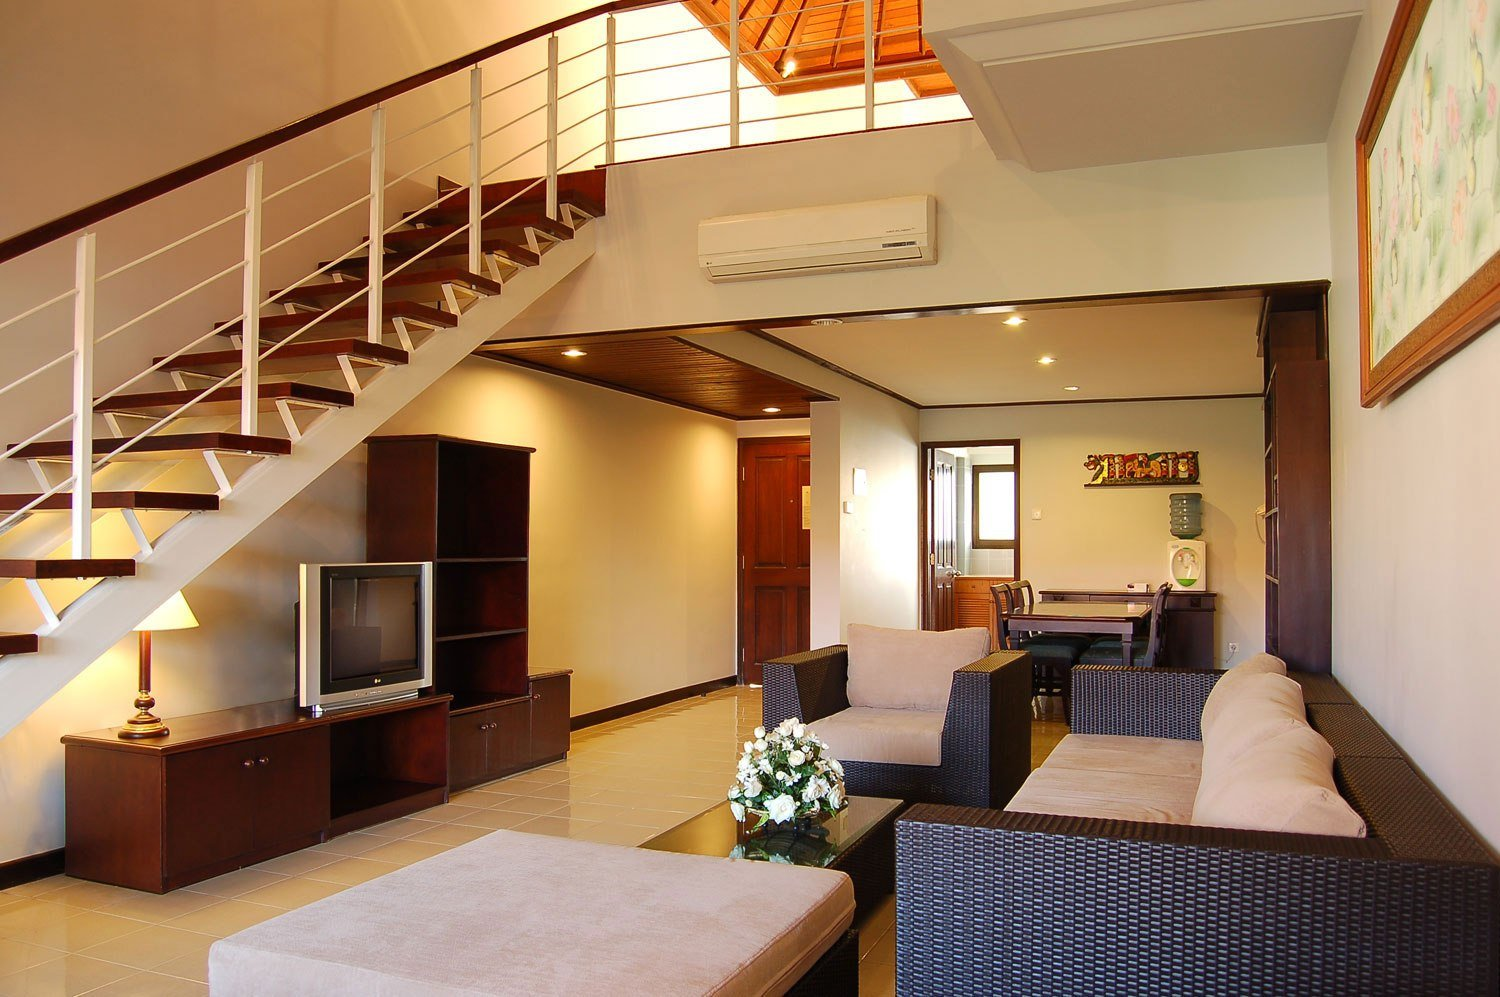 Best 2Bhk Flat For Sale • Apartments For Sale In Guwahati With Pictures